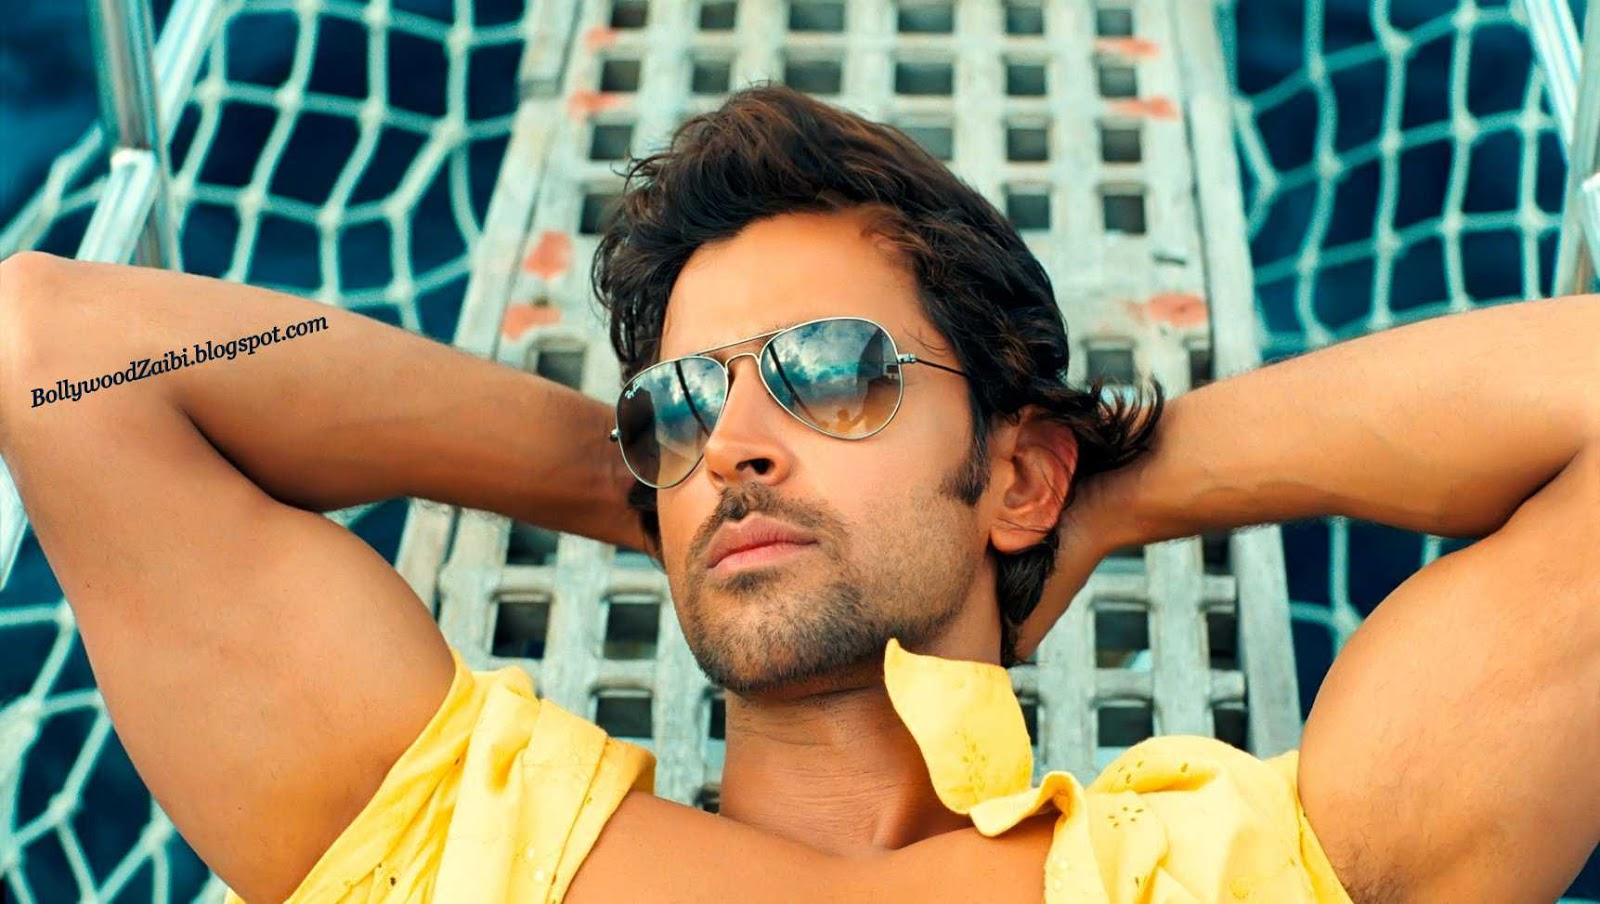 Hrithik Roshan in Kites HD Wallpaper | Bollywood Zaibi